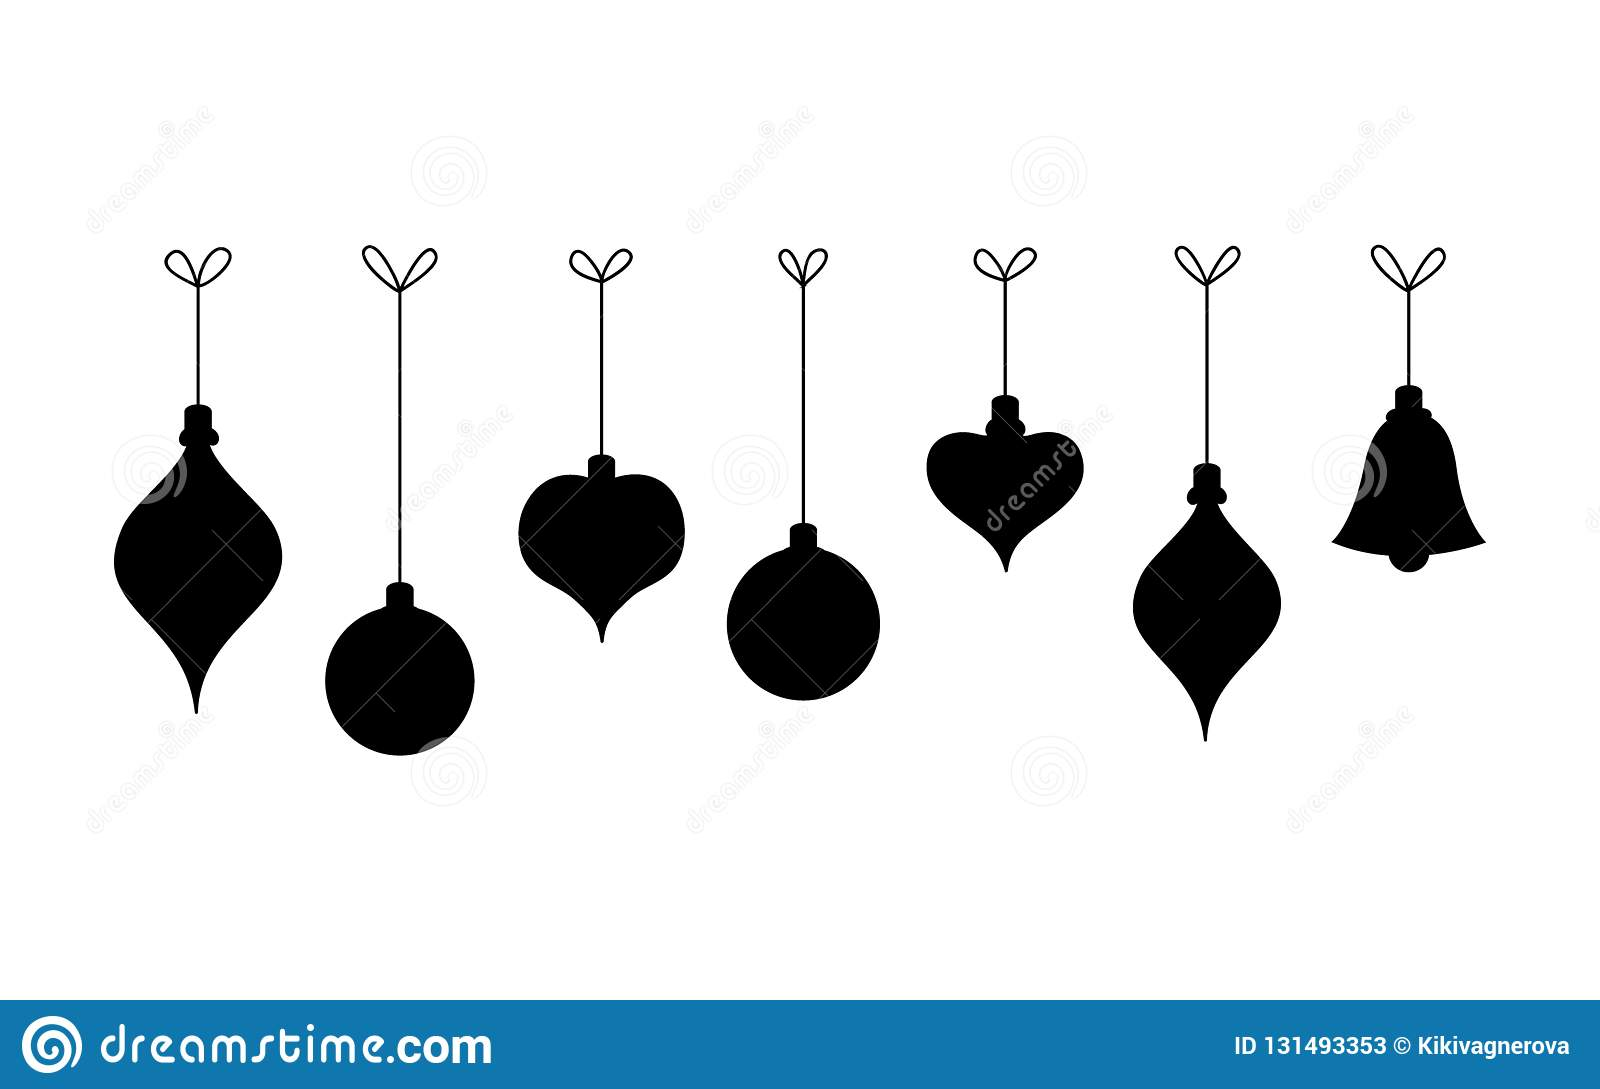 Hanging Christmas Ornaments Silhouette.Black Silhouette Hanging Christmas Balls Stock Vector